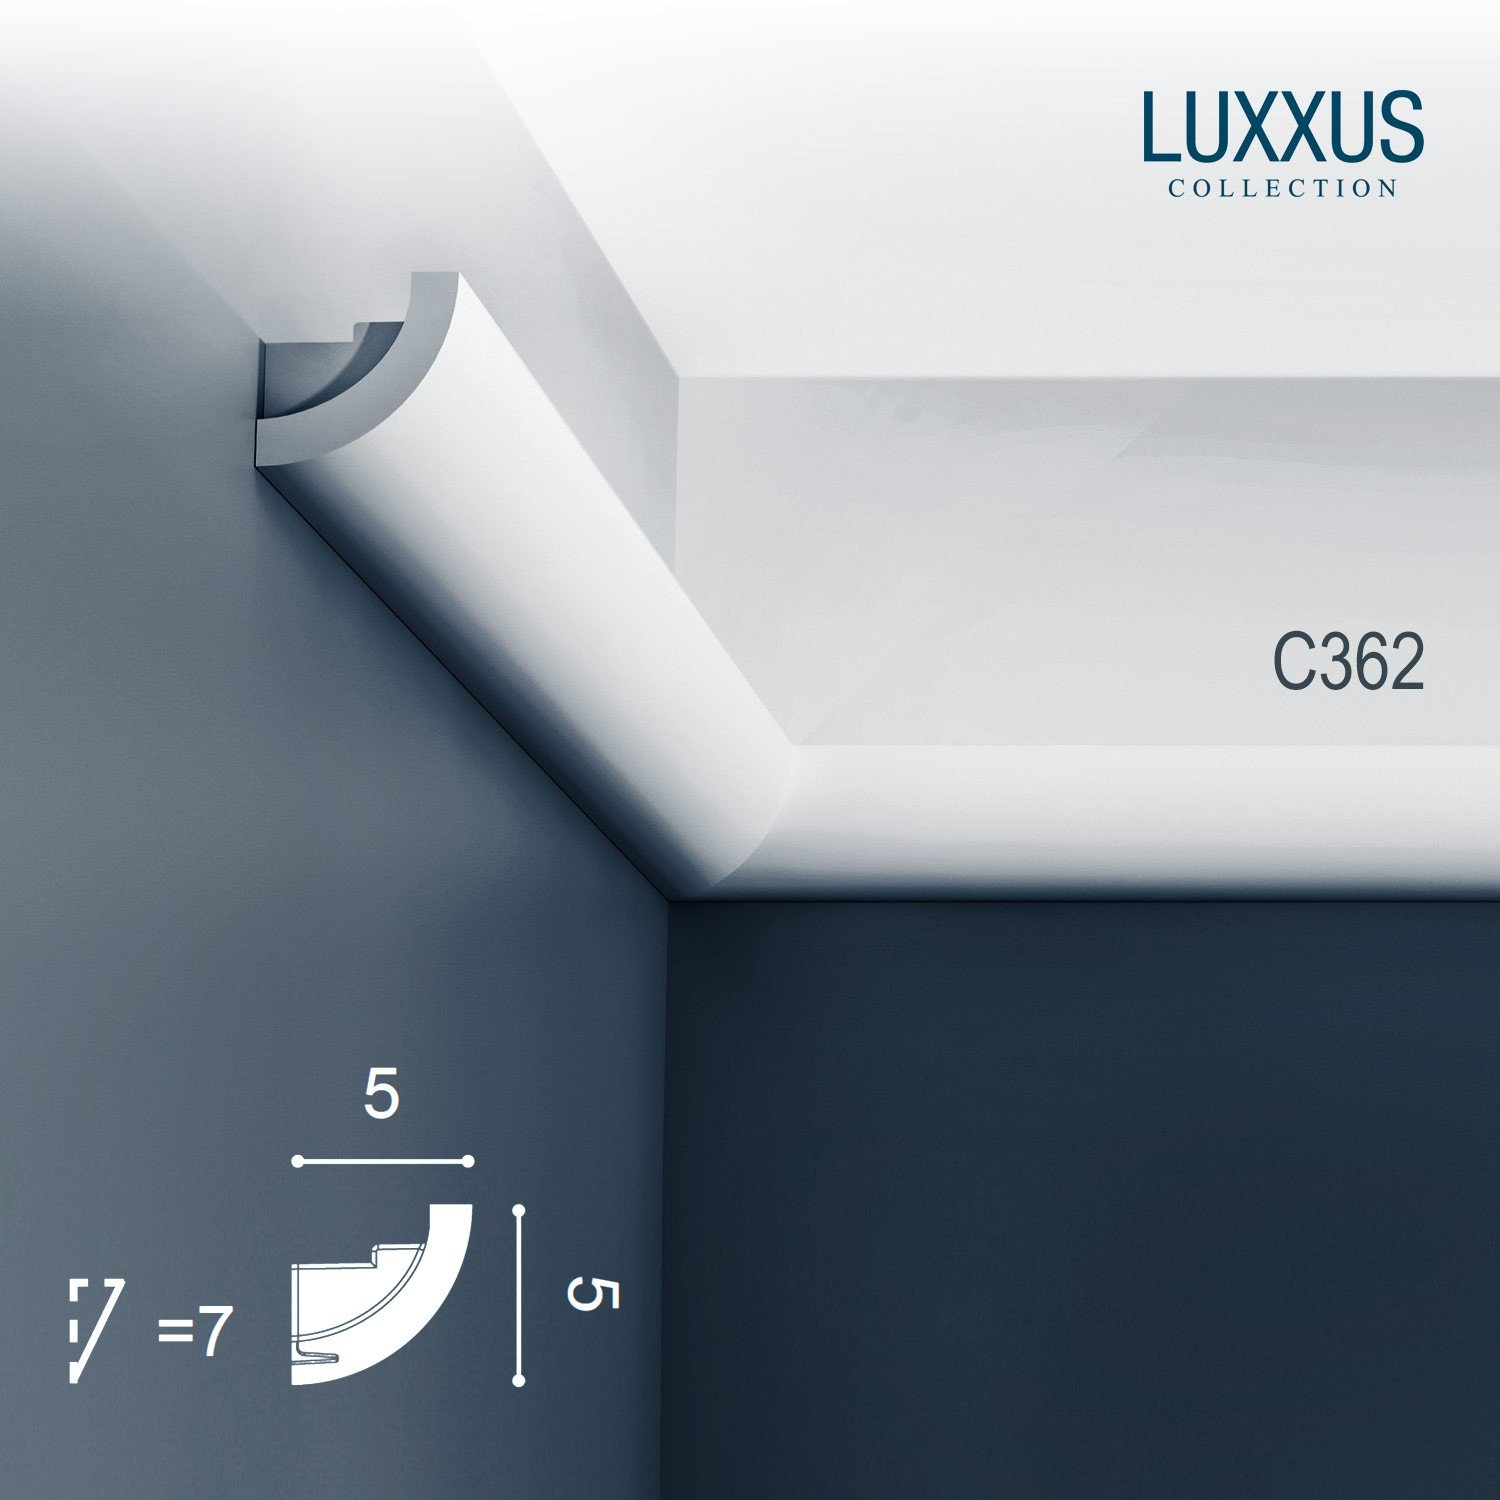 Orac Decor C362 LUXXUS Cornice Moulding Indirect Lighting System Ceiling Coving Decoration